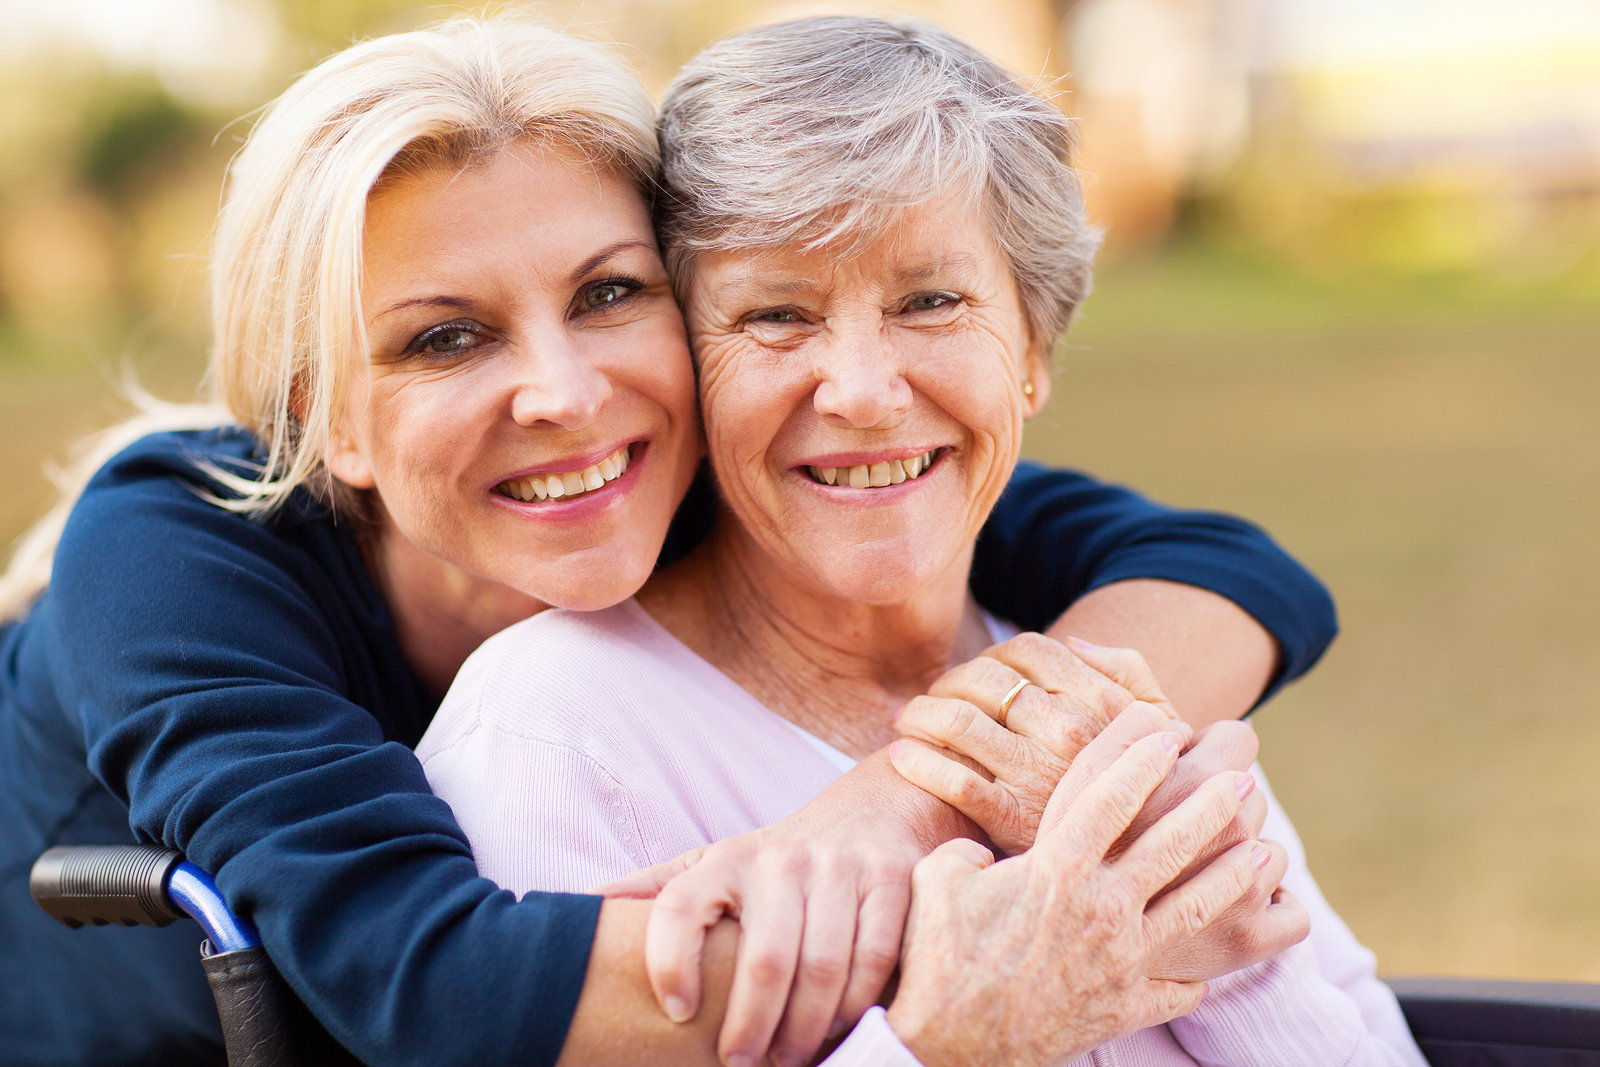 Elderly Care Alexandria VA: Senior Assistance